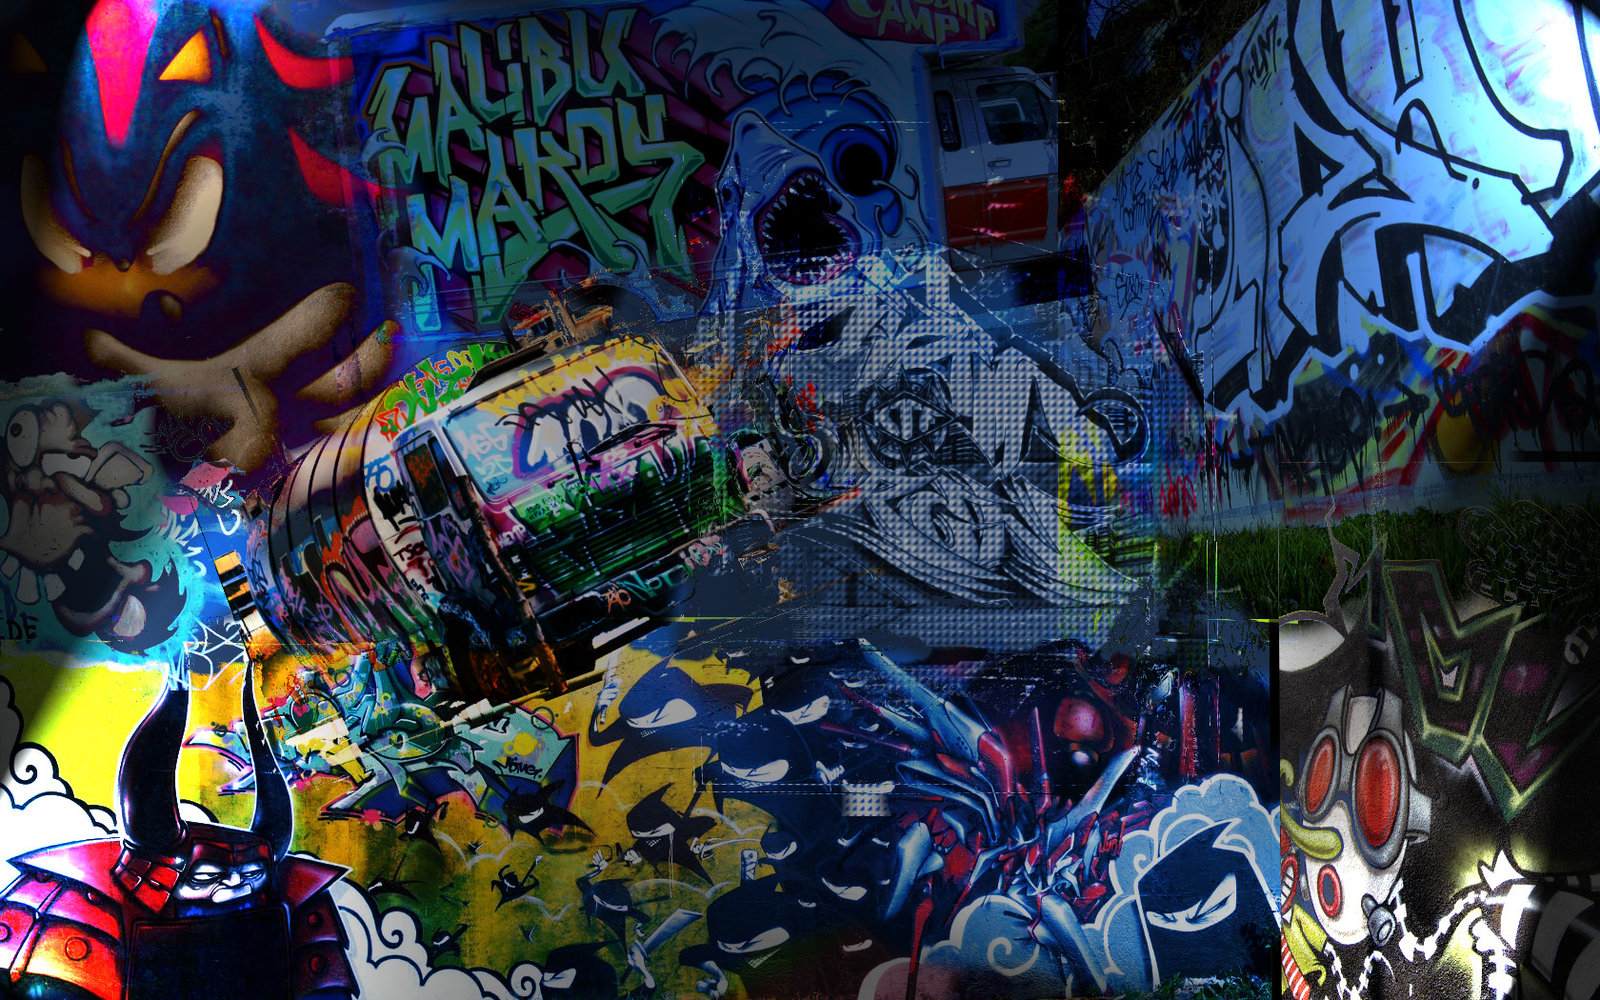 Free Graffiti Wallpapers HD Desktop | Ideas for the House